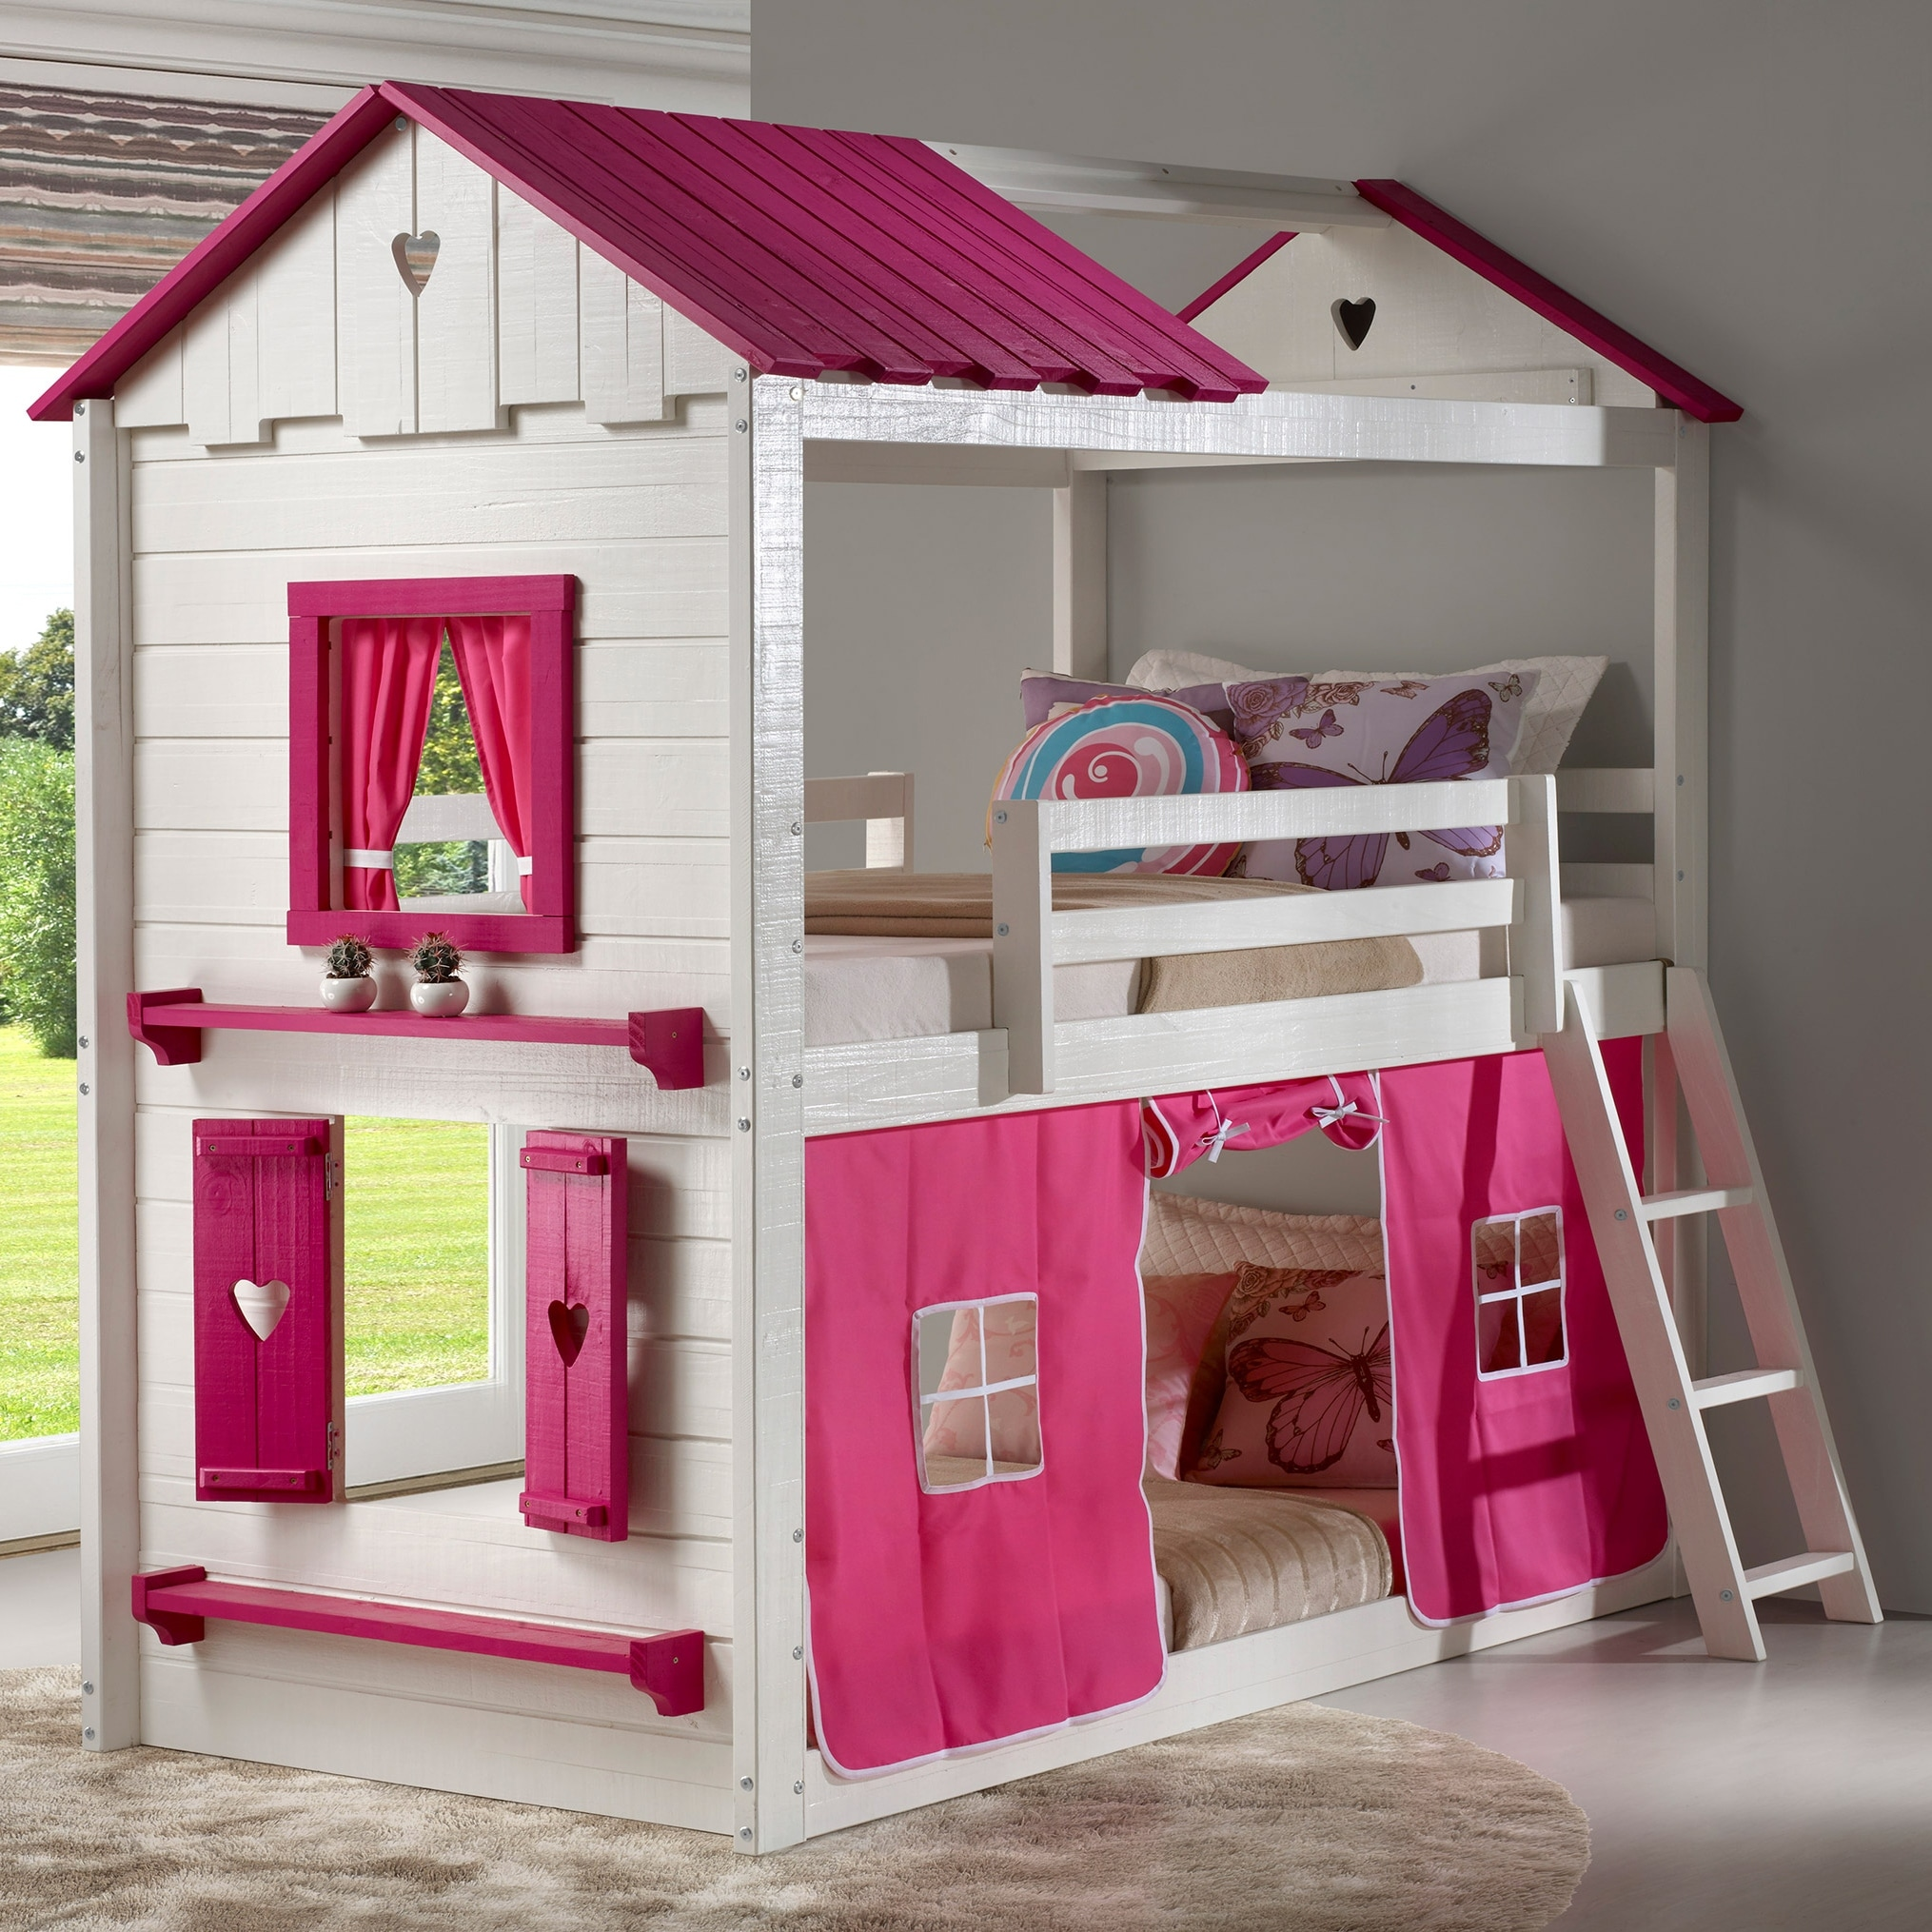 Sweetheart White And Pink Twin Over Twin Bunk Bed With Tent On Sale Overstock 28167464